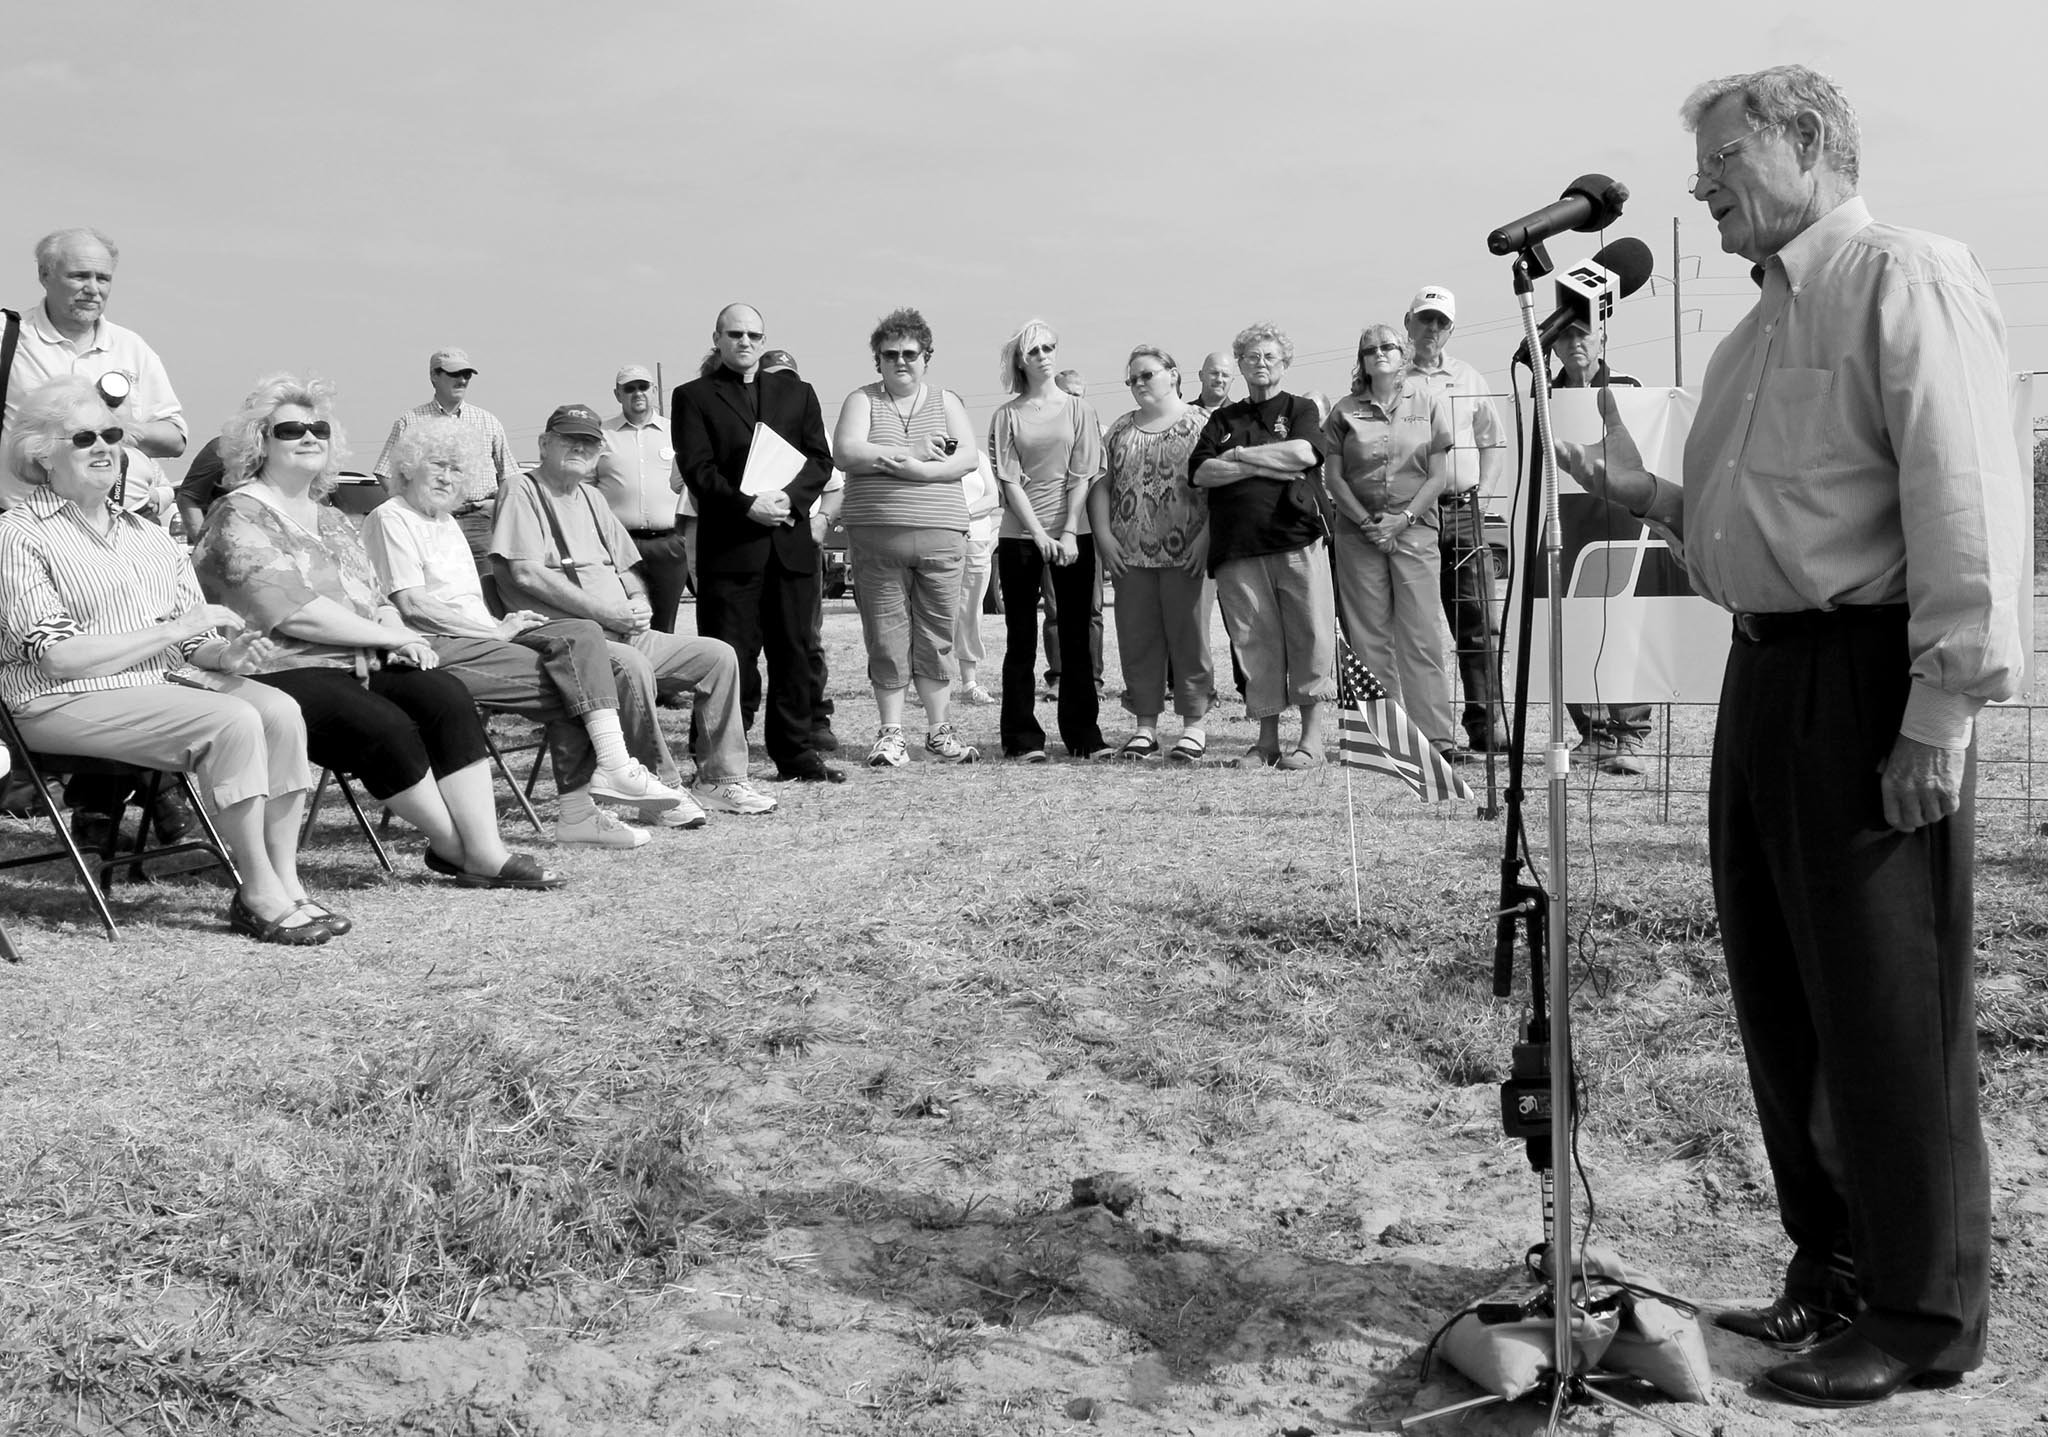 U.S. Sen. Jim Inhofe, standing in an old buffalo wallow, speaks against government overreach in proposed changes to the Clean Water Act during a 2012 press conference hosted by Oklahoma Farm Bureau. The press event was held on land owned by Garfield County Farm Bureau member Gary Johnson.q